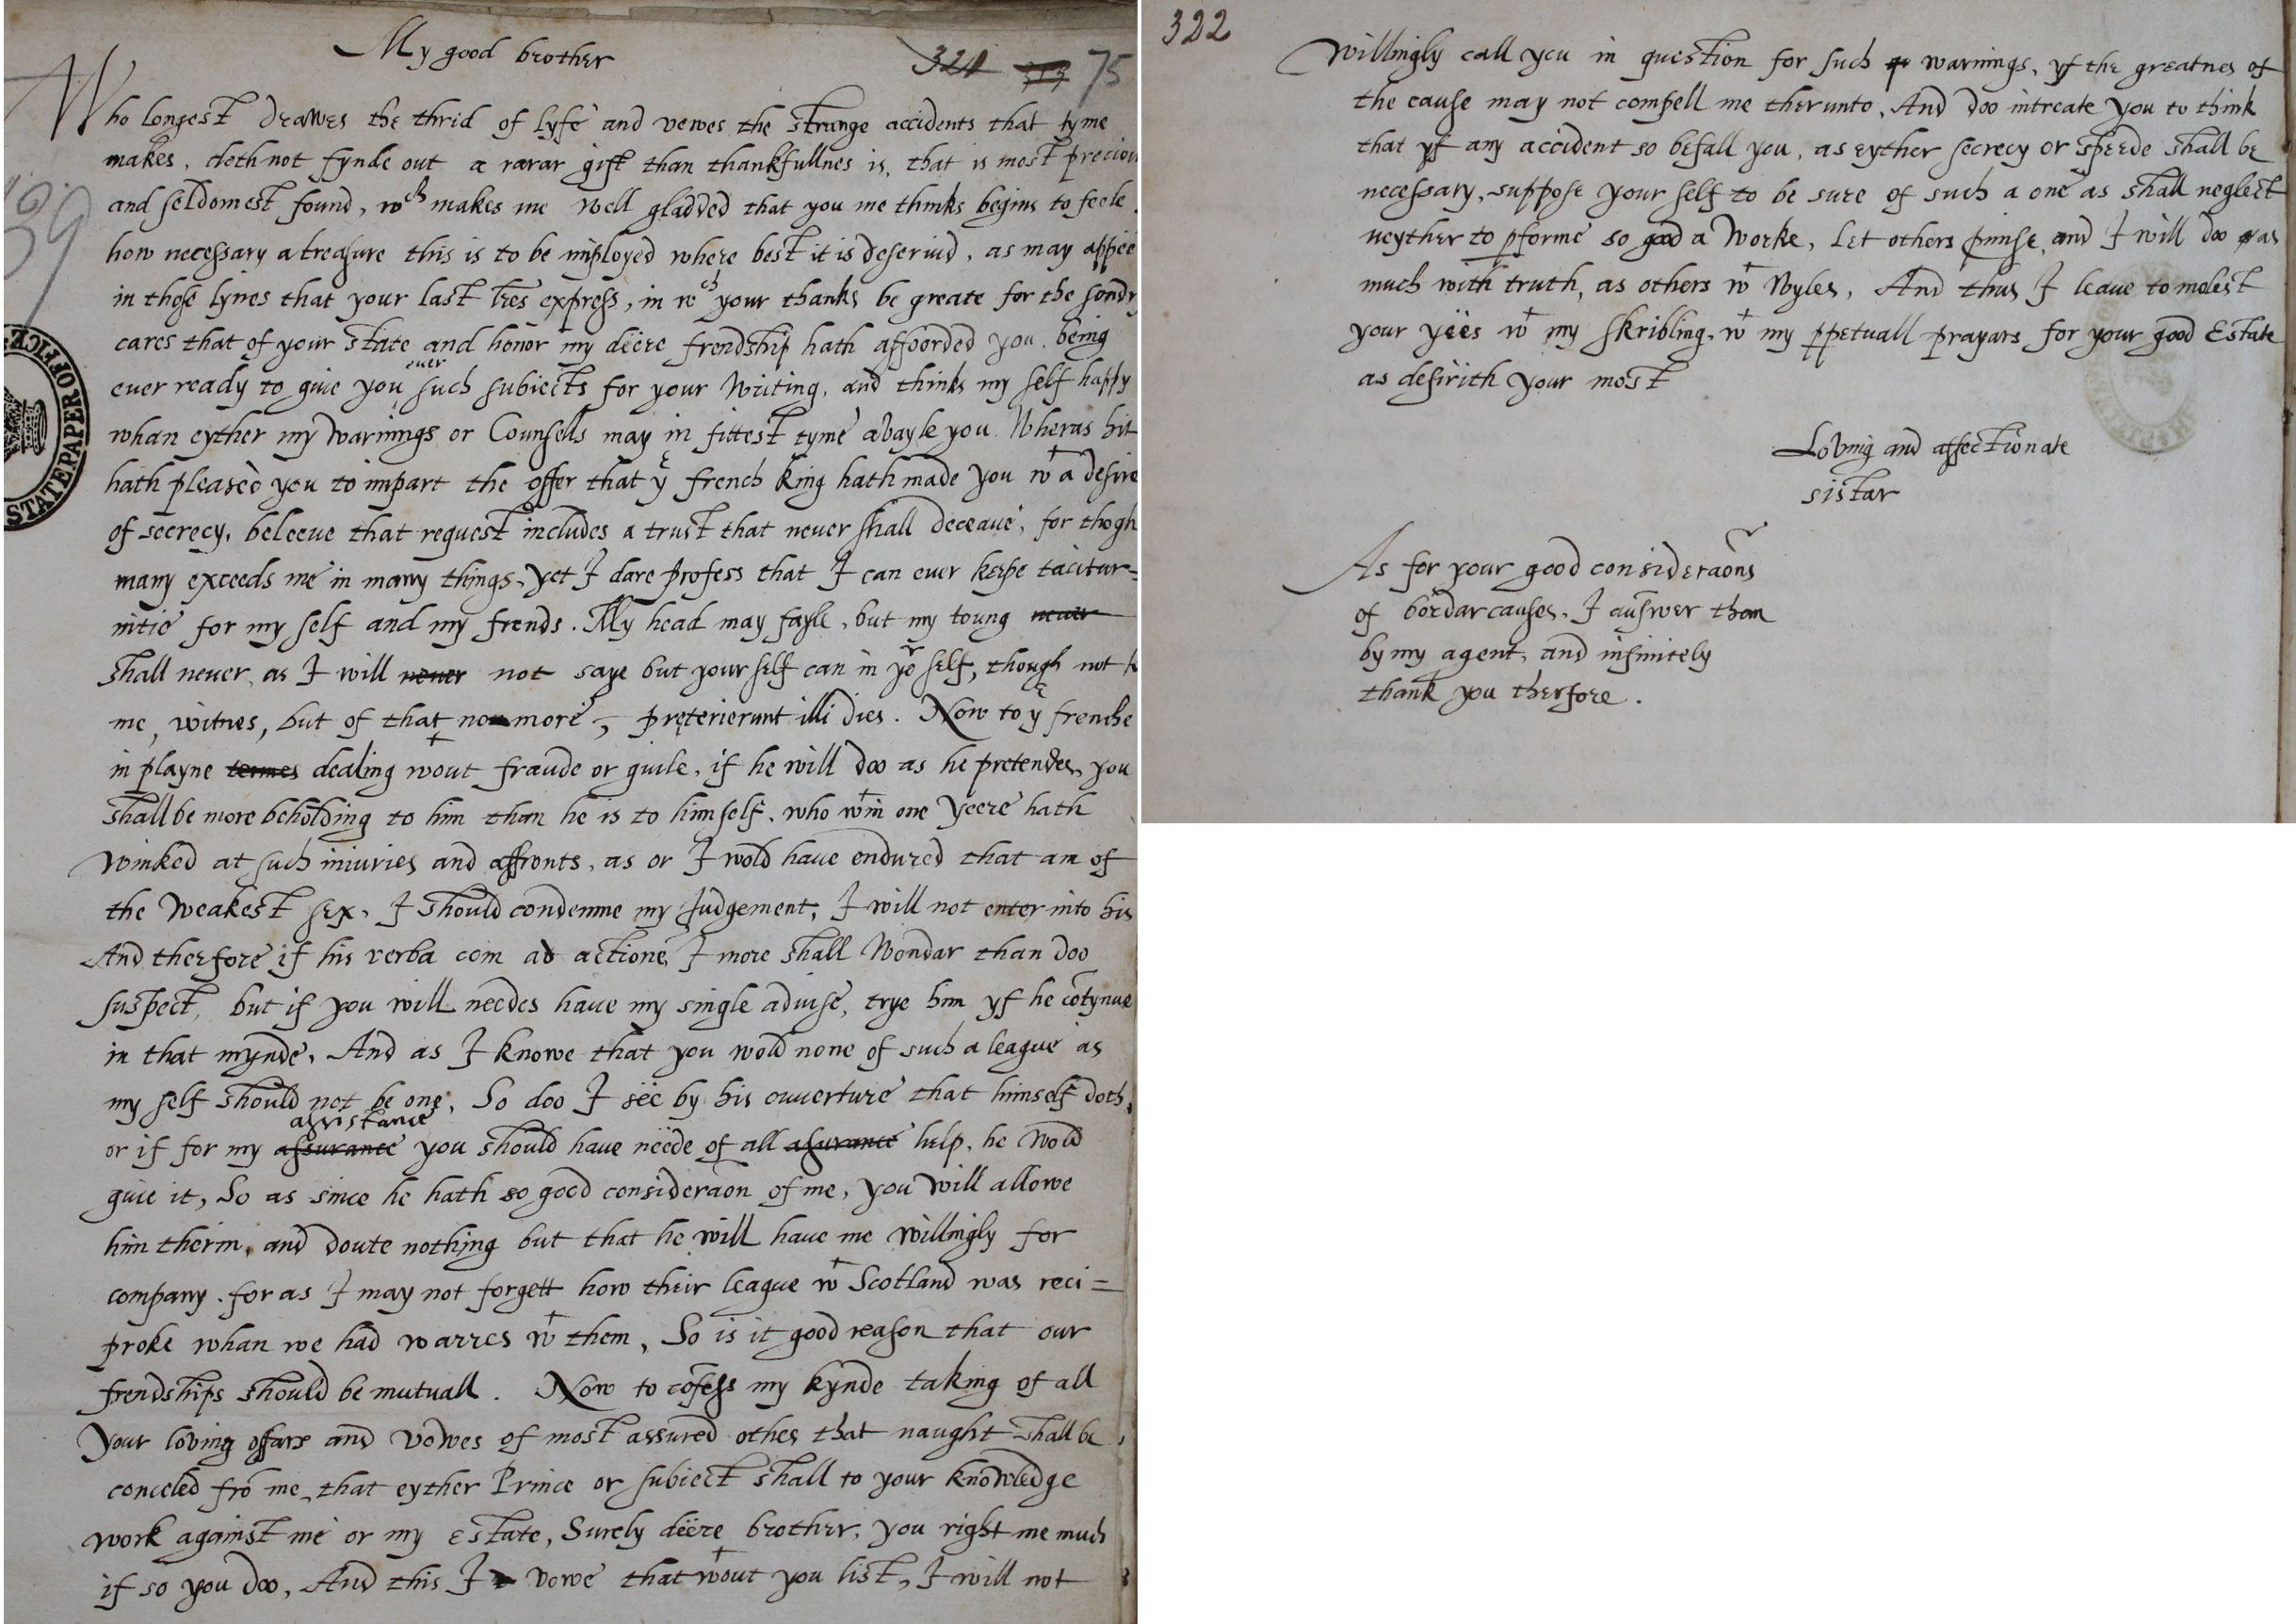 Elizabeth I to James VI, 4 July 1602 (SP 52/68 f.75)